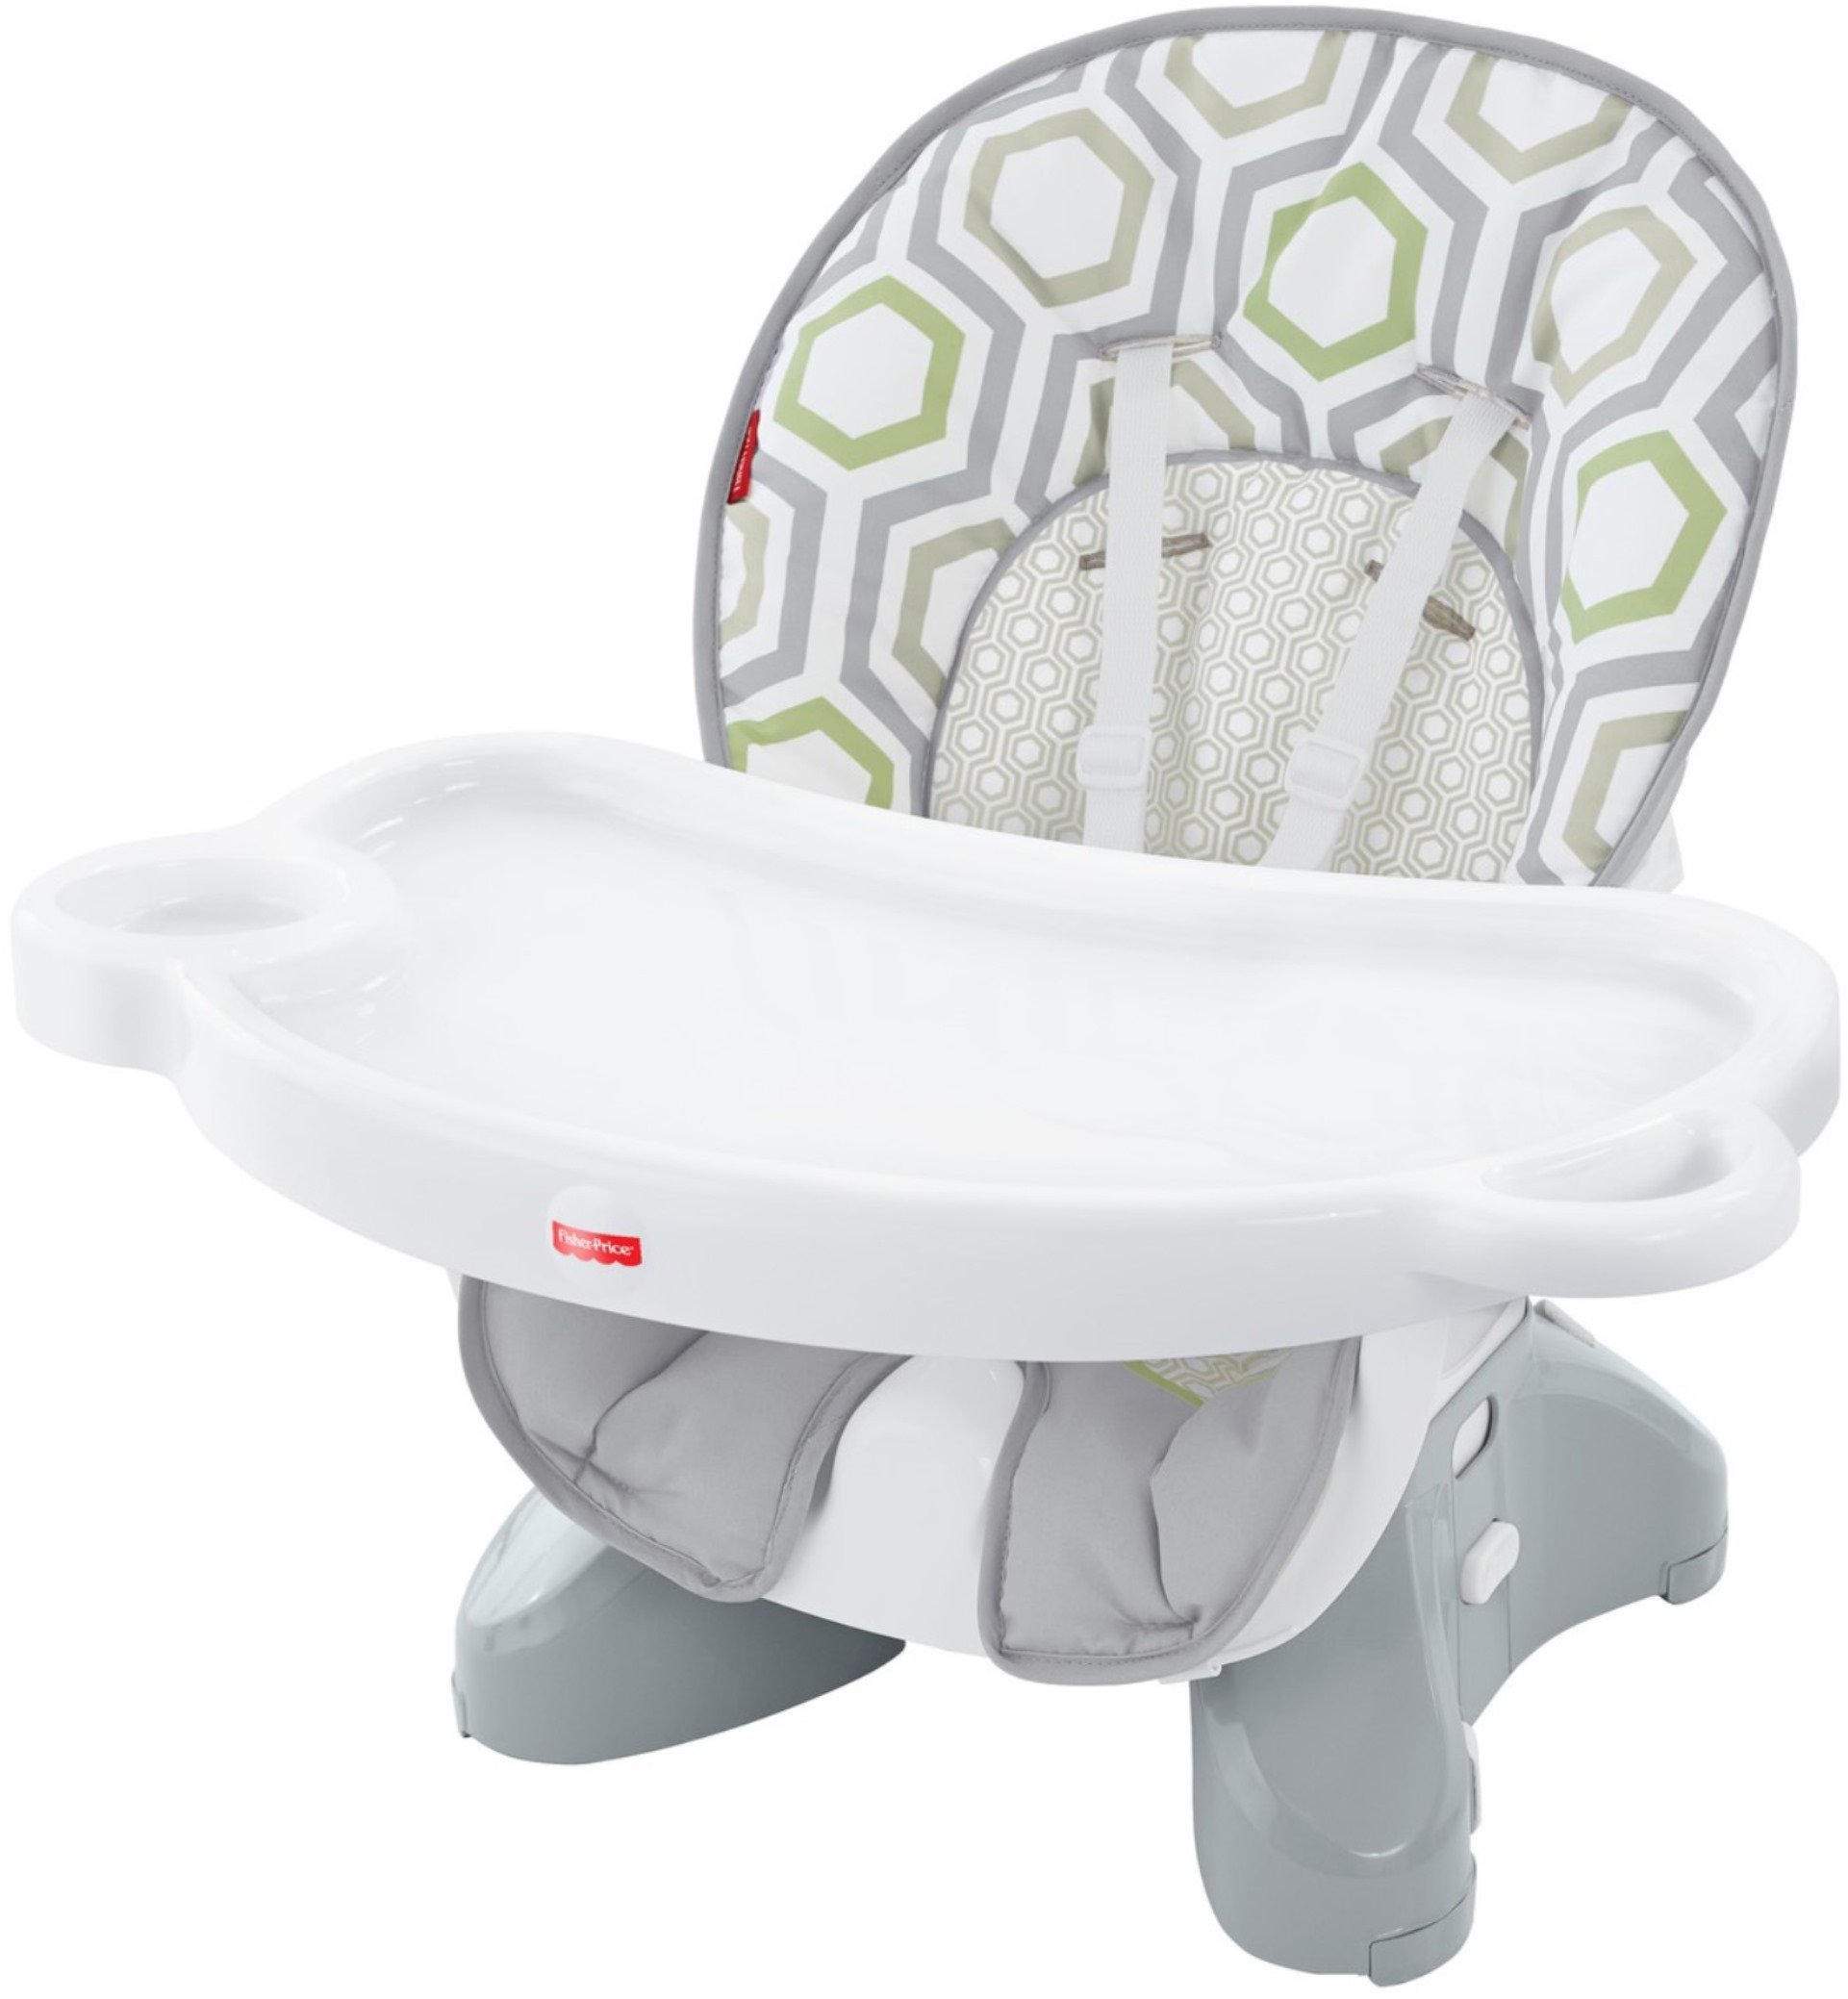 Amazon Fisher Price SpaceSaver High Chair Cover Creme Geo Baby